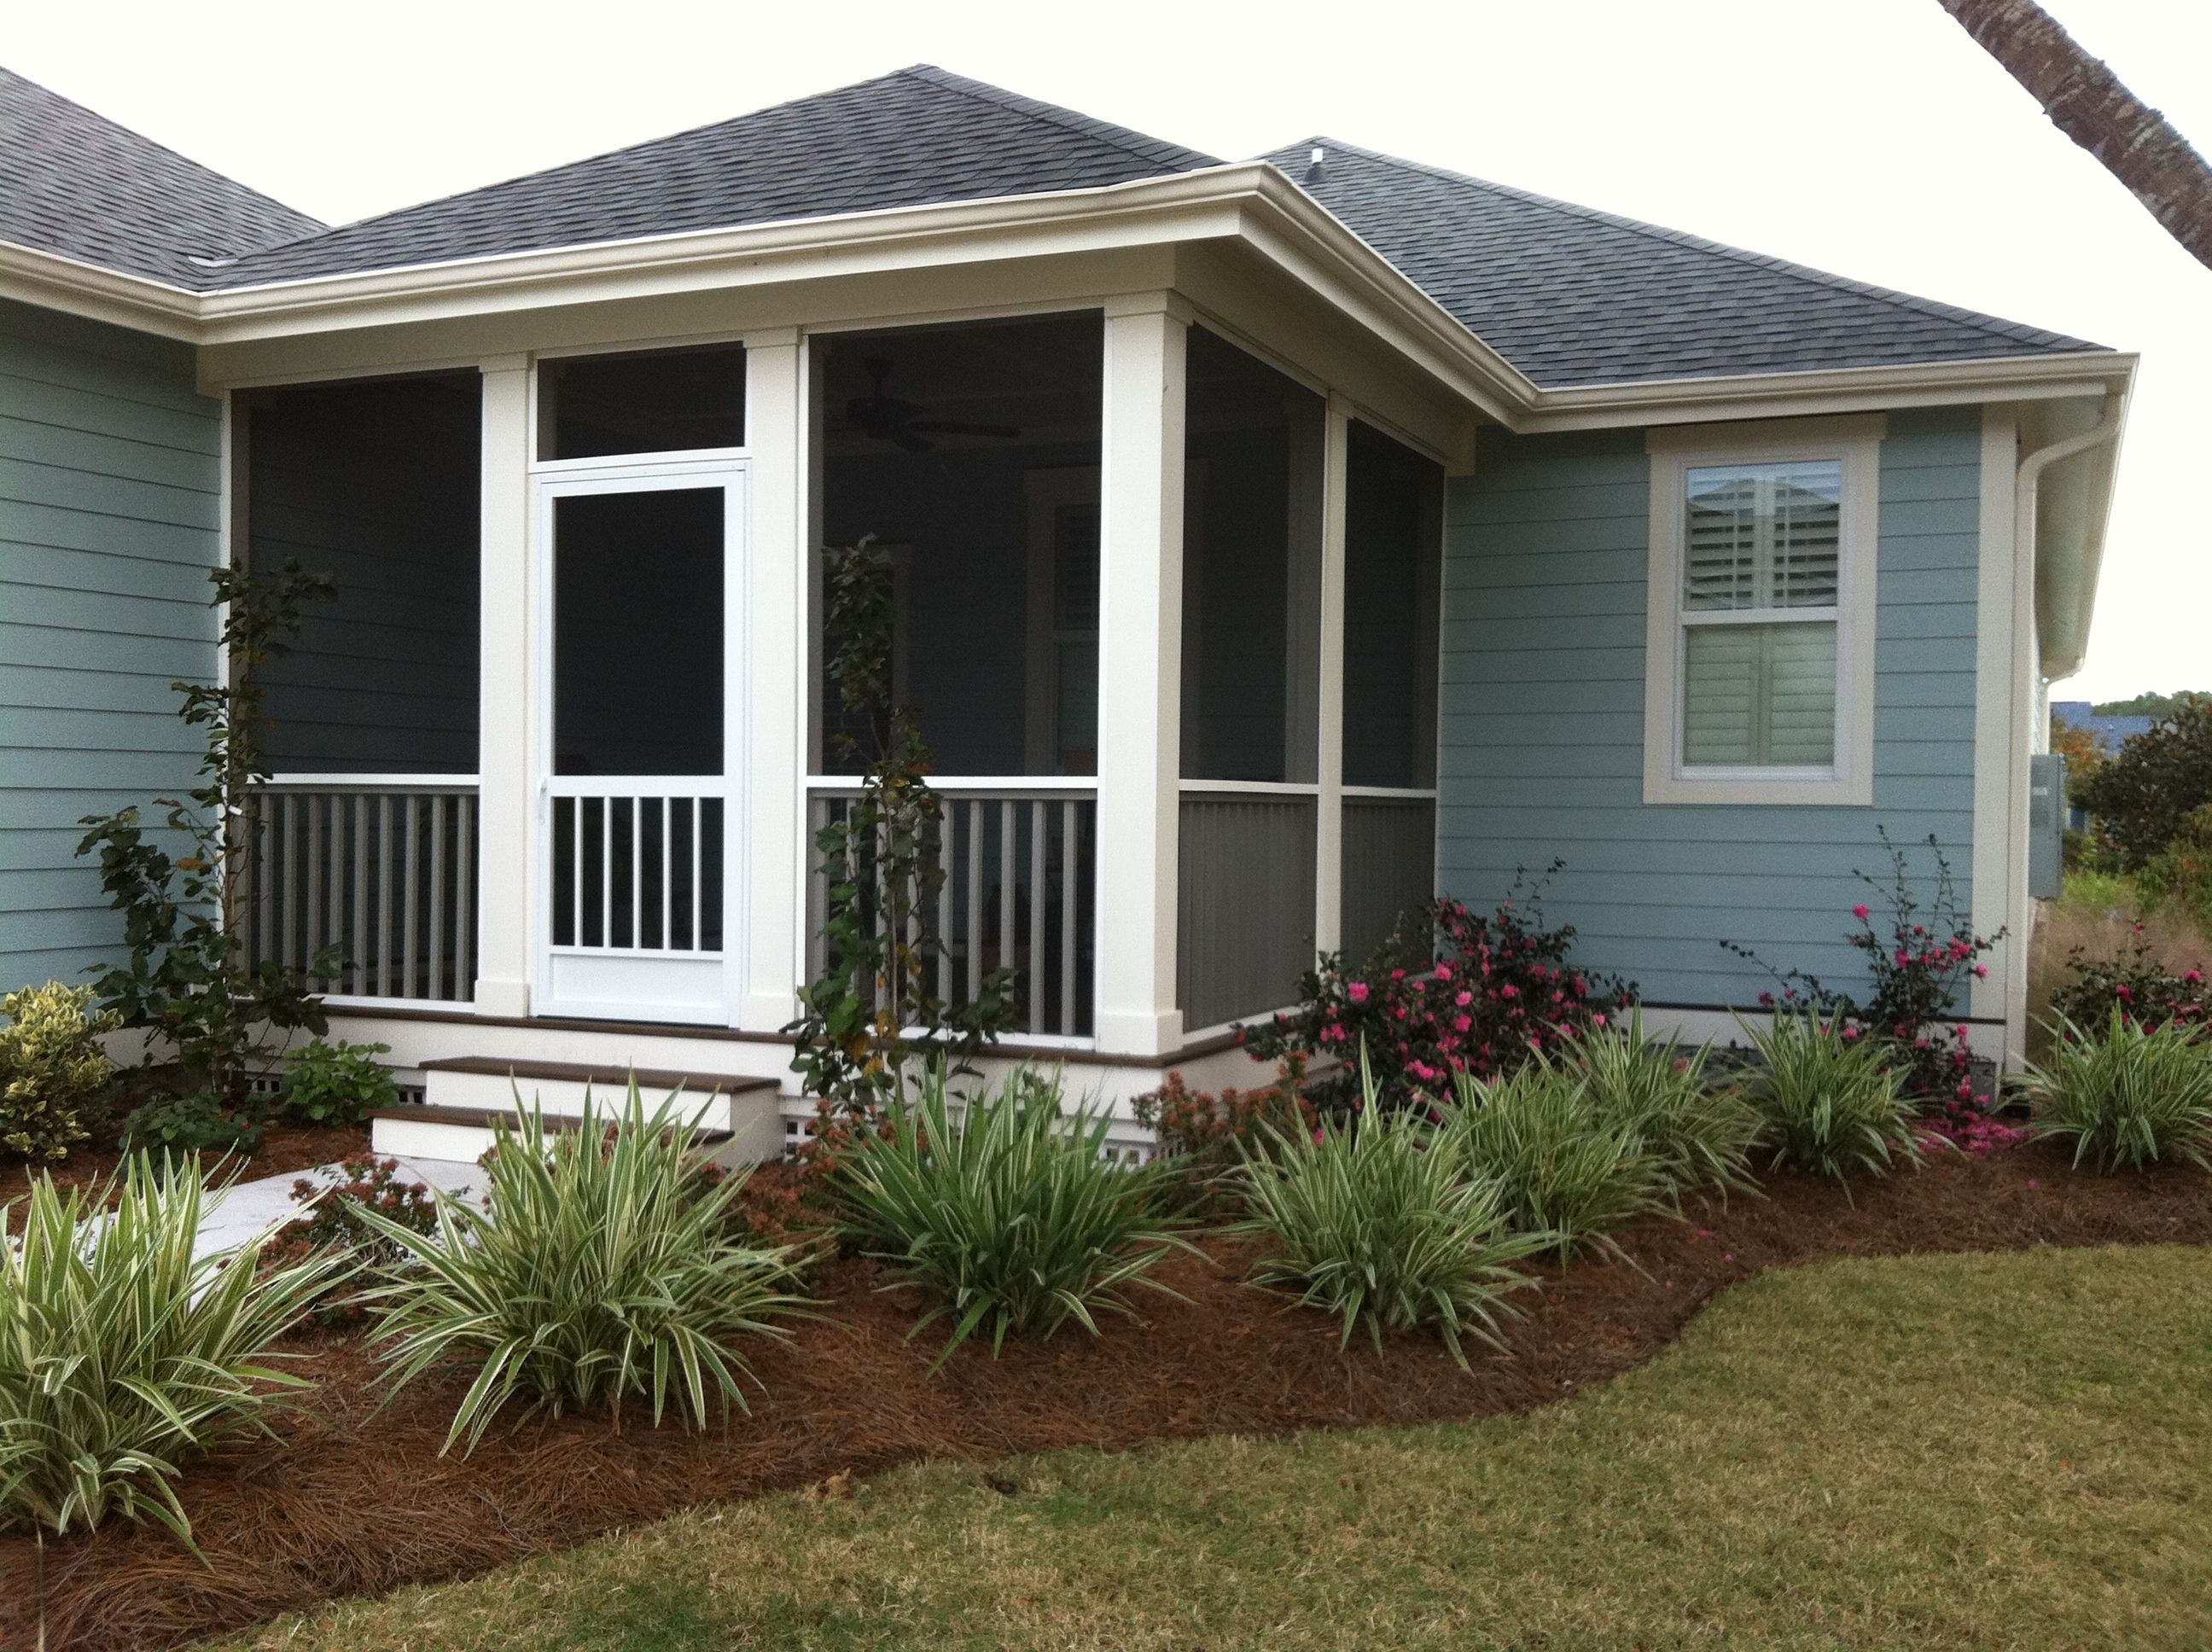 Bm Wedgewood Gray Exterior With White Down Trim In Shade